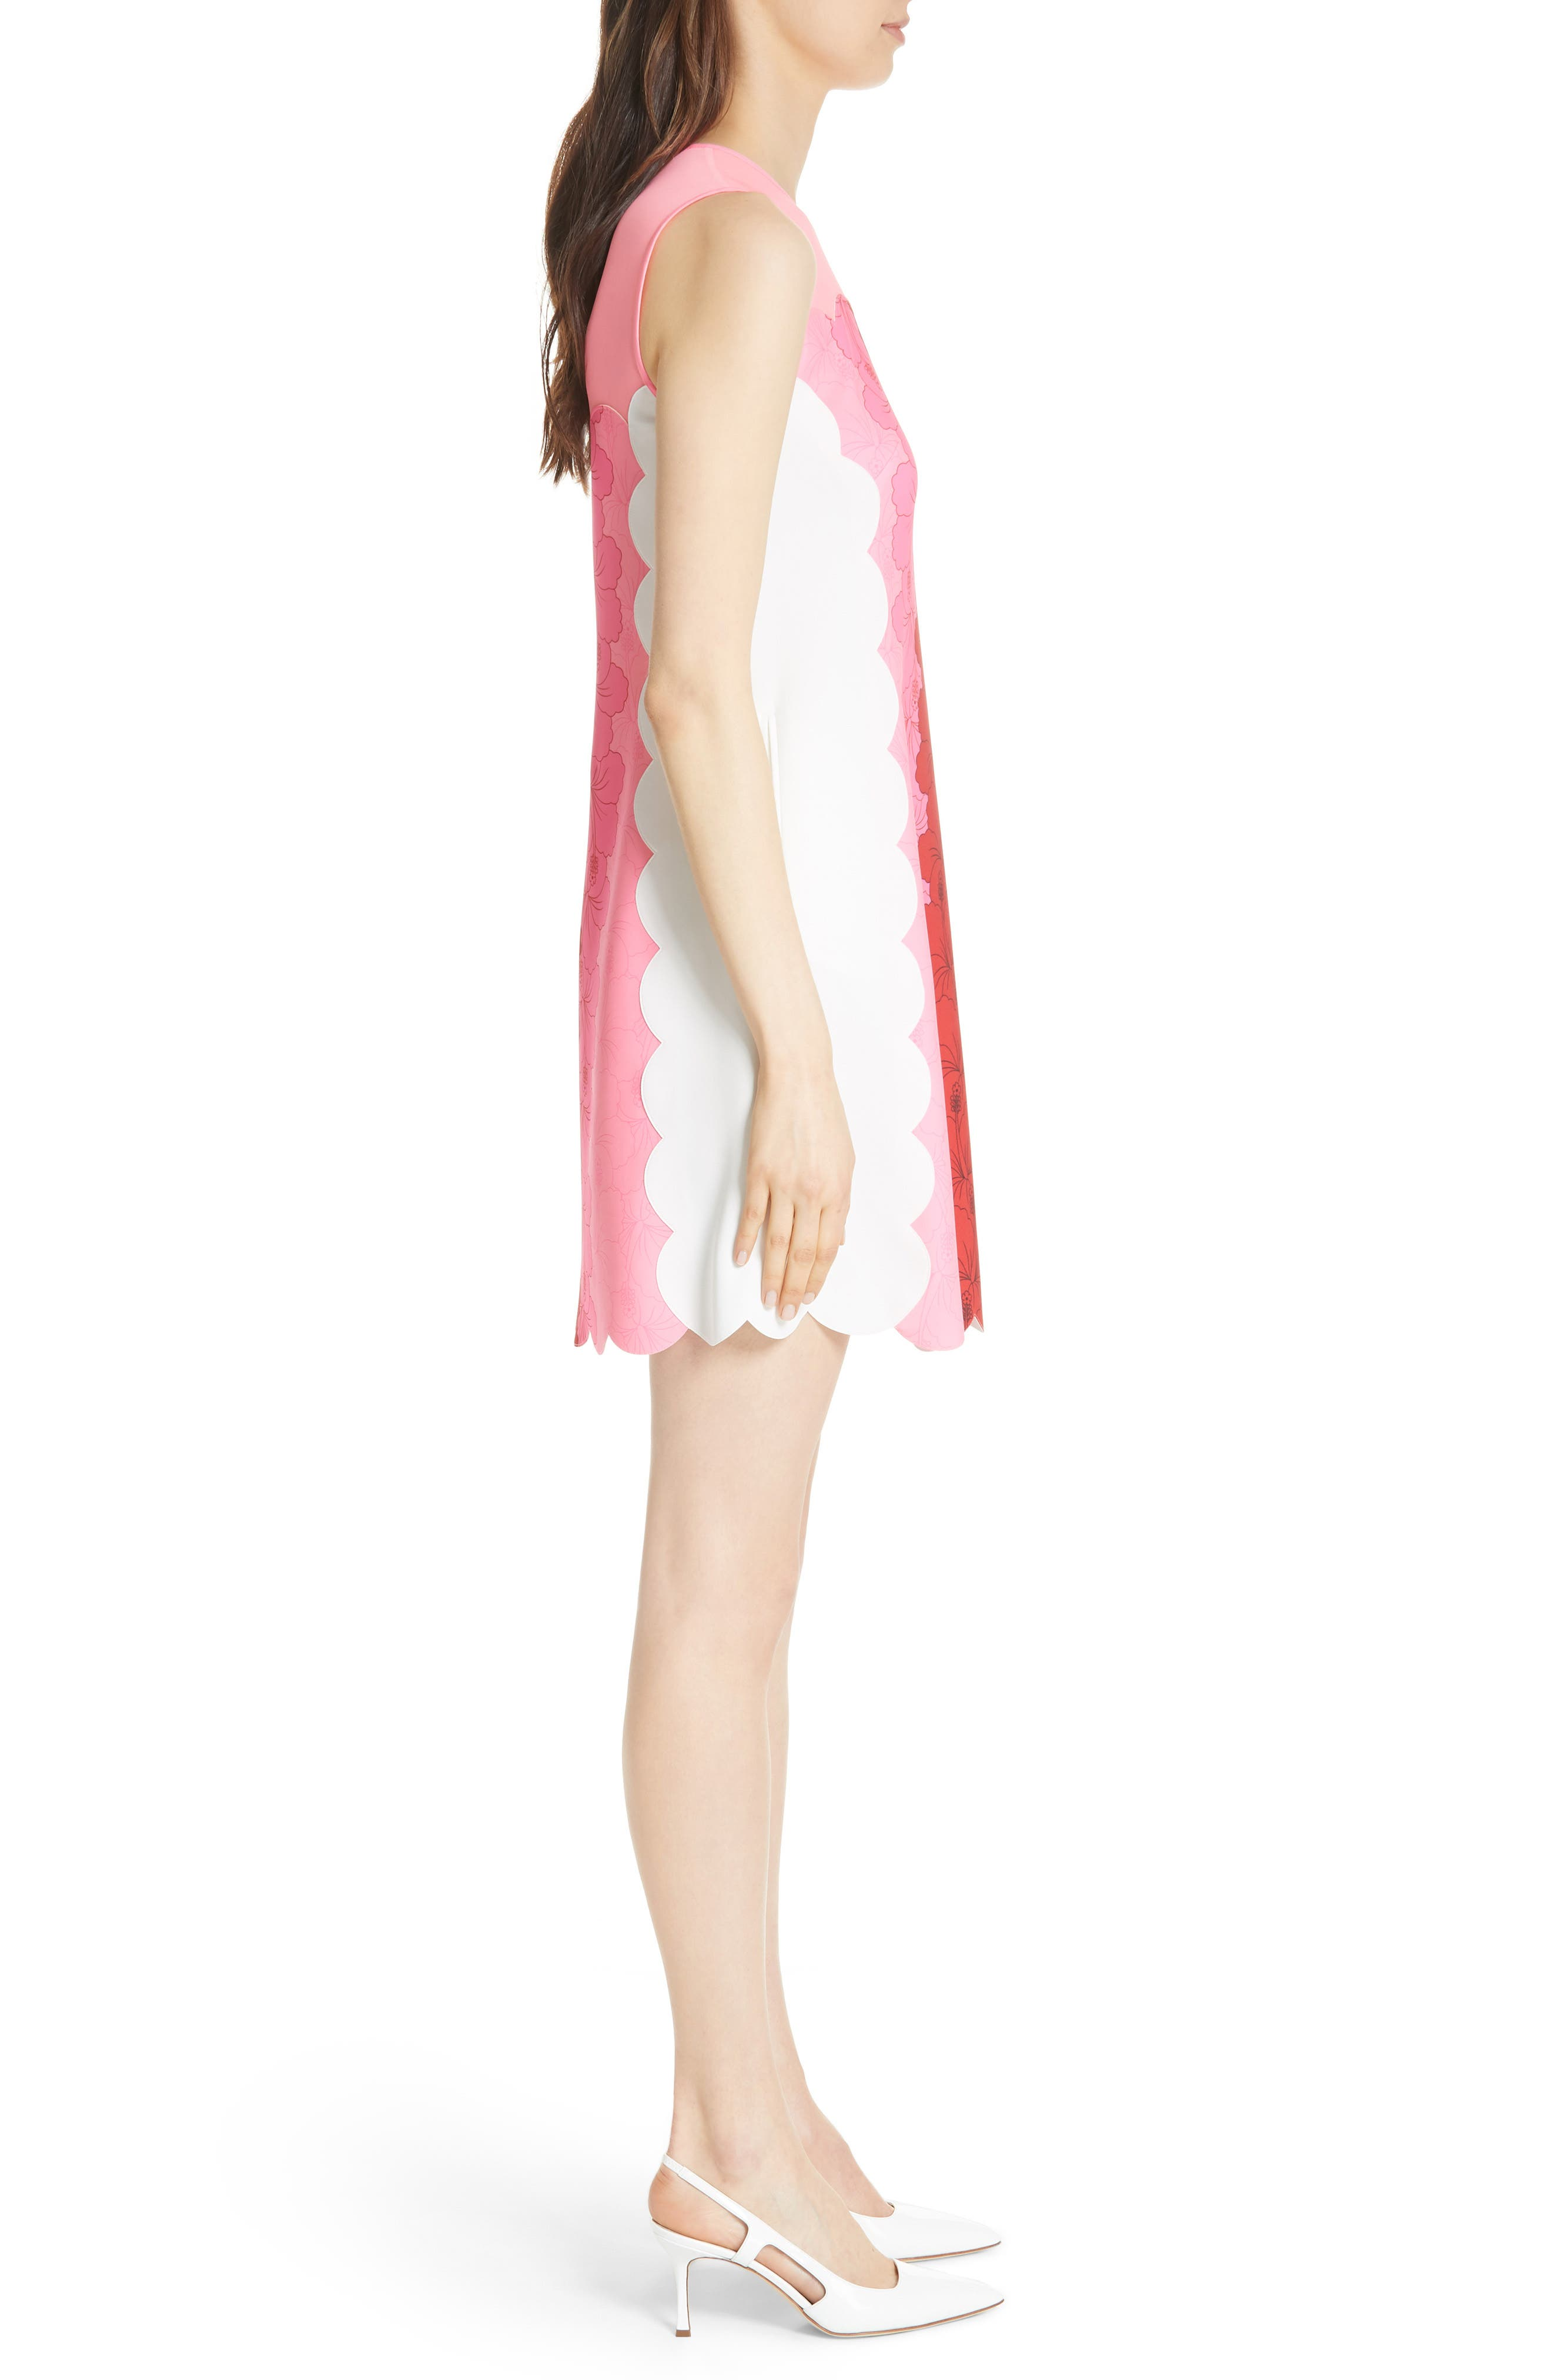 Angge Happiness Dress,                             Alternate thumbnail 3, color,                             671